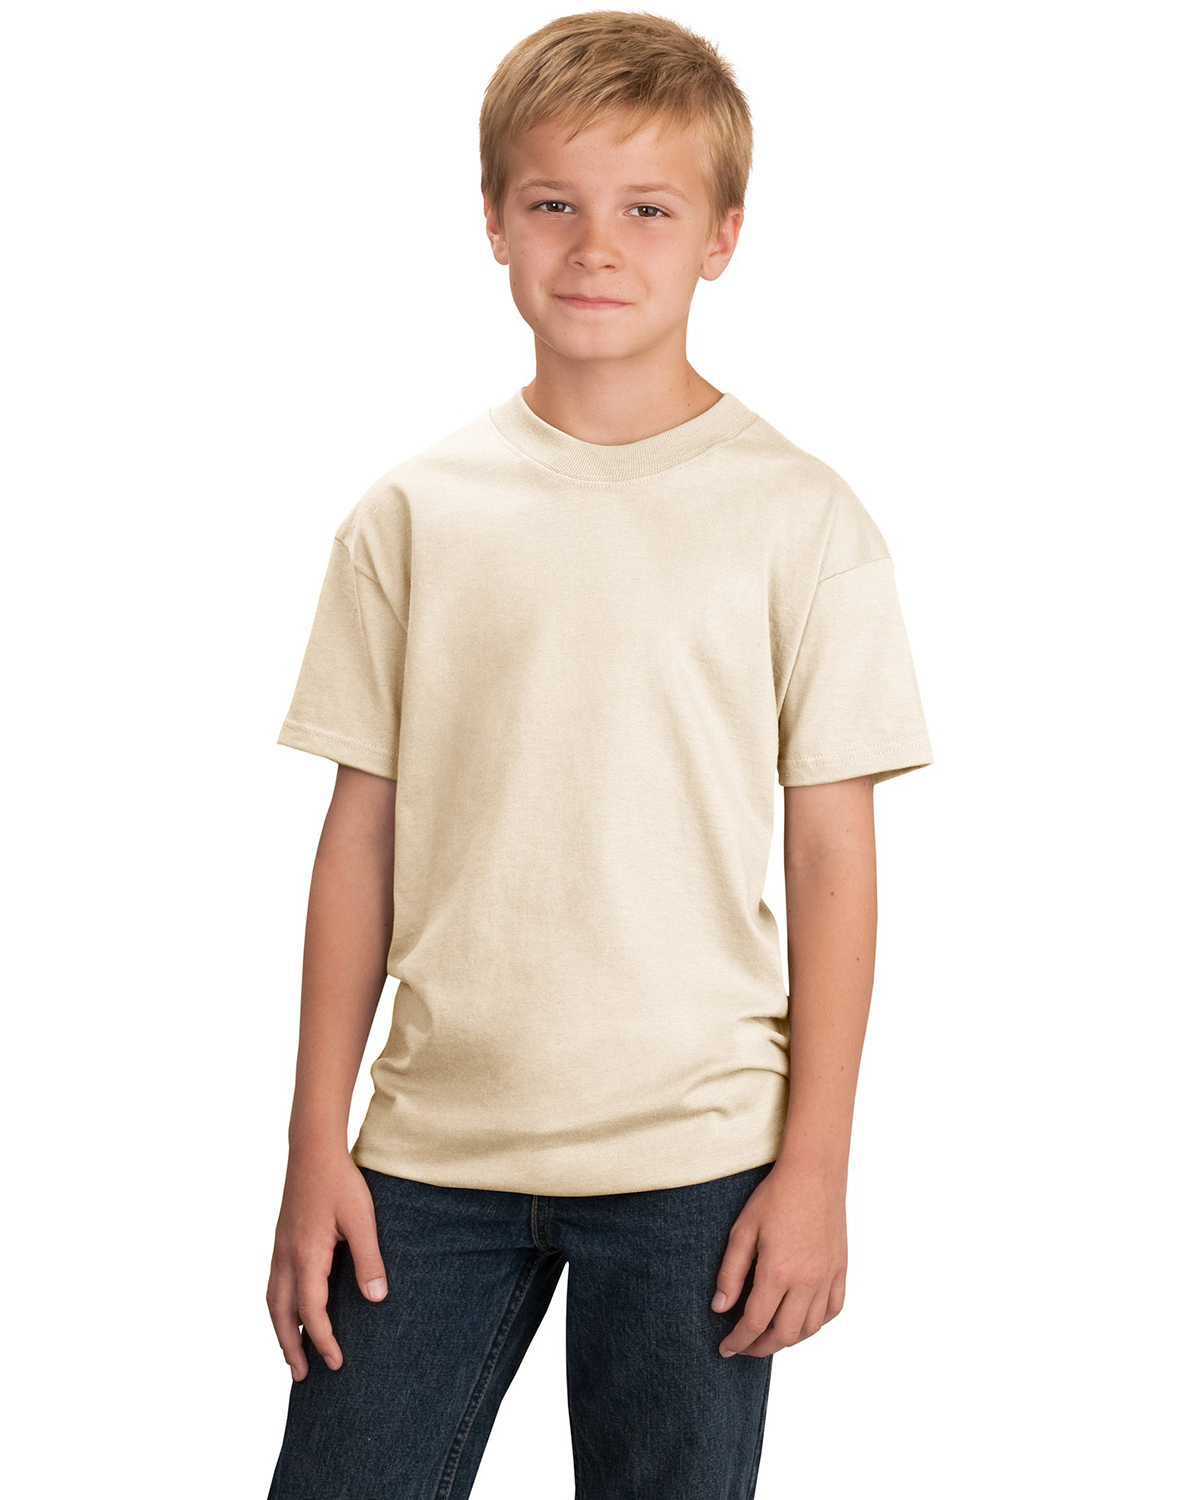 Port & Company PC54Y Boys 5.4 oz 100% Cotton T-Shirt Natural at GotApparel